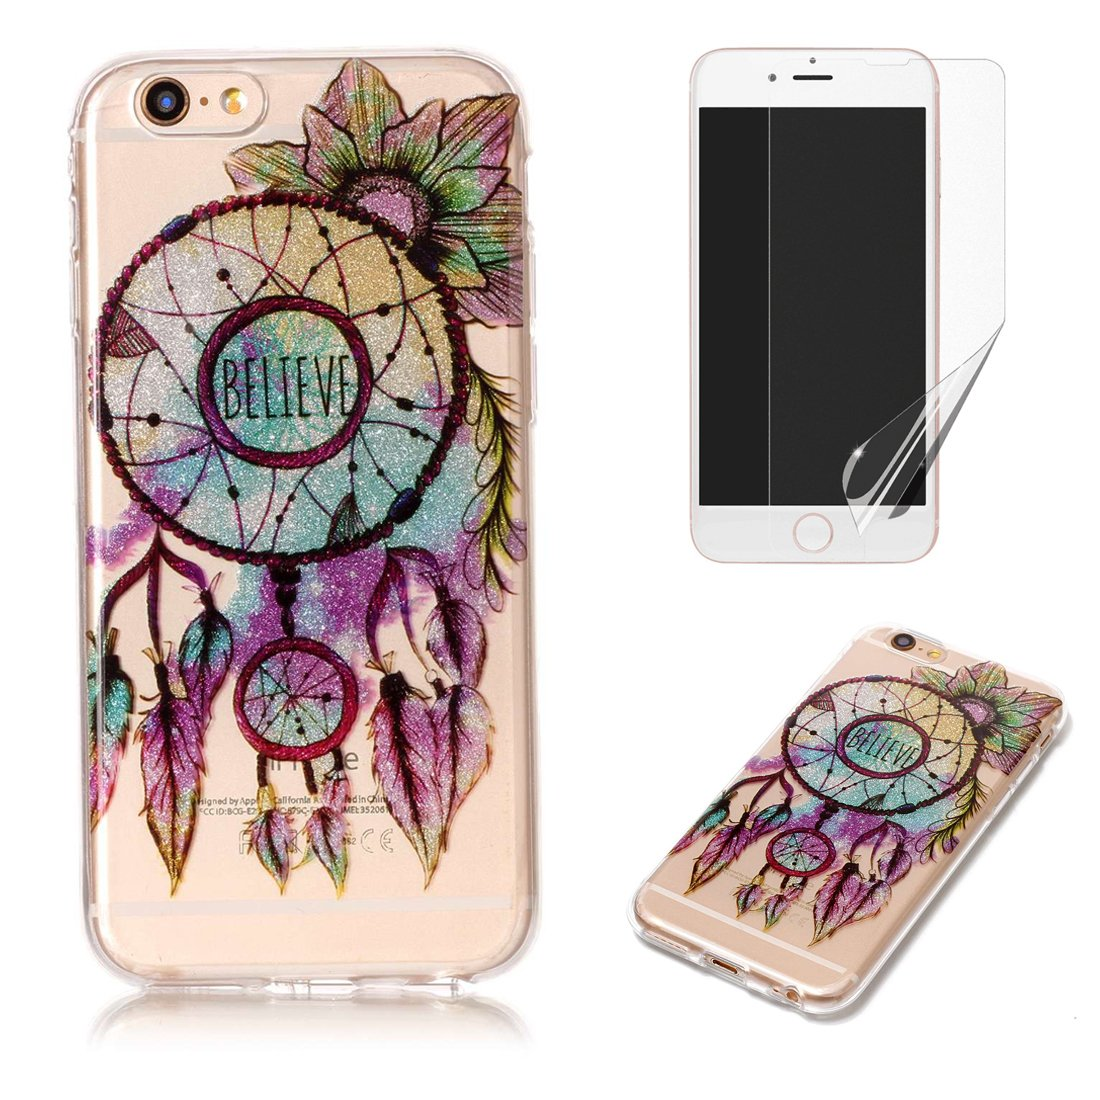 For iphone 6 Plus/6S Plus Case with Pattern Dreamcatcher, OYIME Glitter Bling Design Ultra Thin Slim Fit Protective Back Cover Soft Silicone Rubber Shell Drop Protection Anti-Scratch Transparent Bumper and Screen Protector